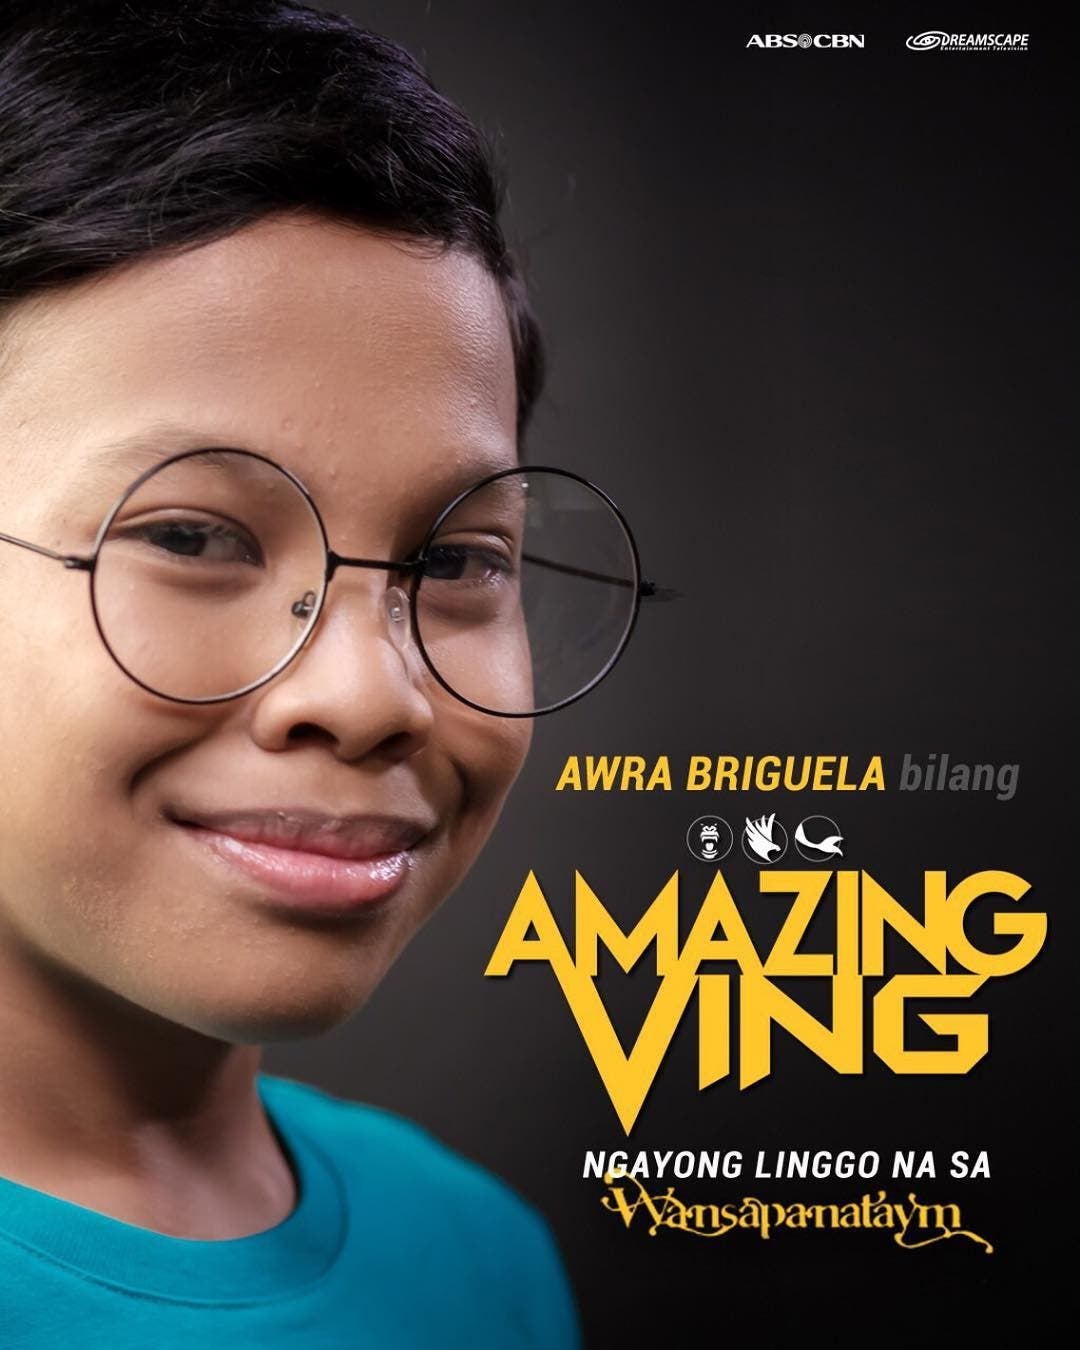 """ABS-CBN is now airing the full trailer of """"Amazing Ving,"""" the newest Wansapanataym episode starring child wonder Awra Briguela as a young superhero."""